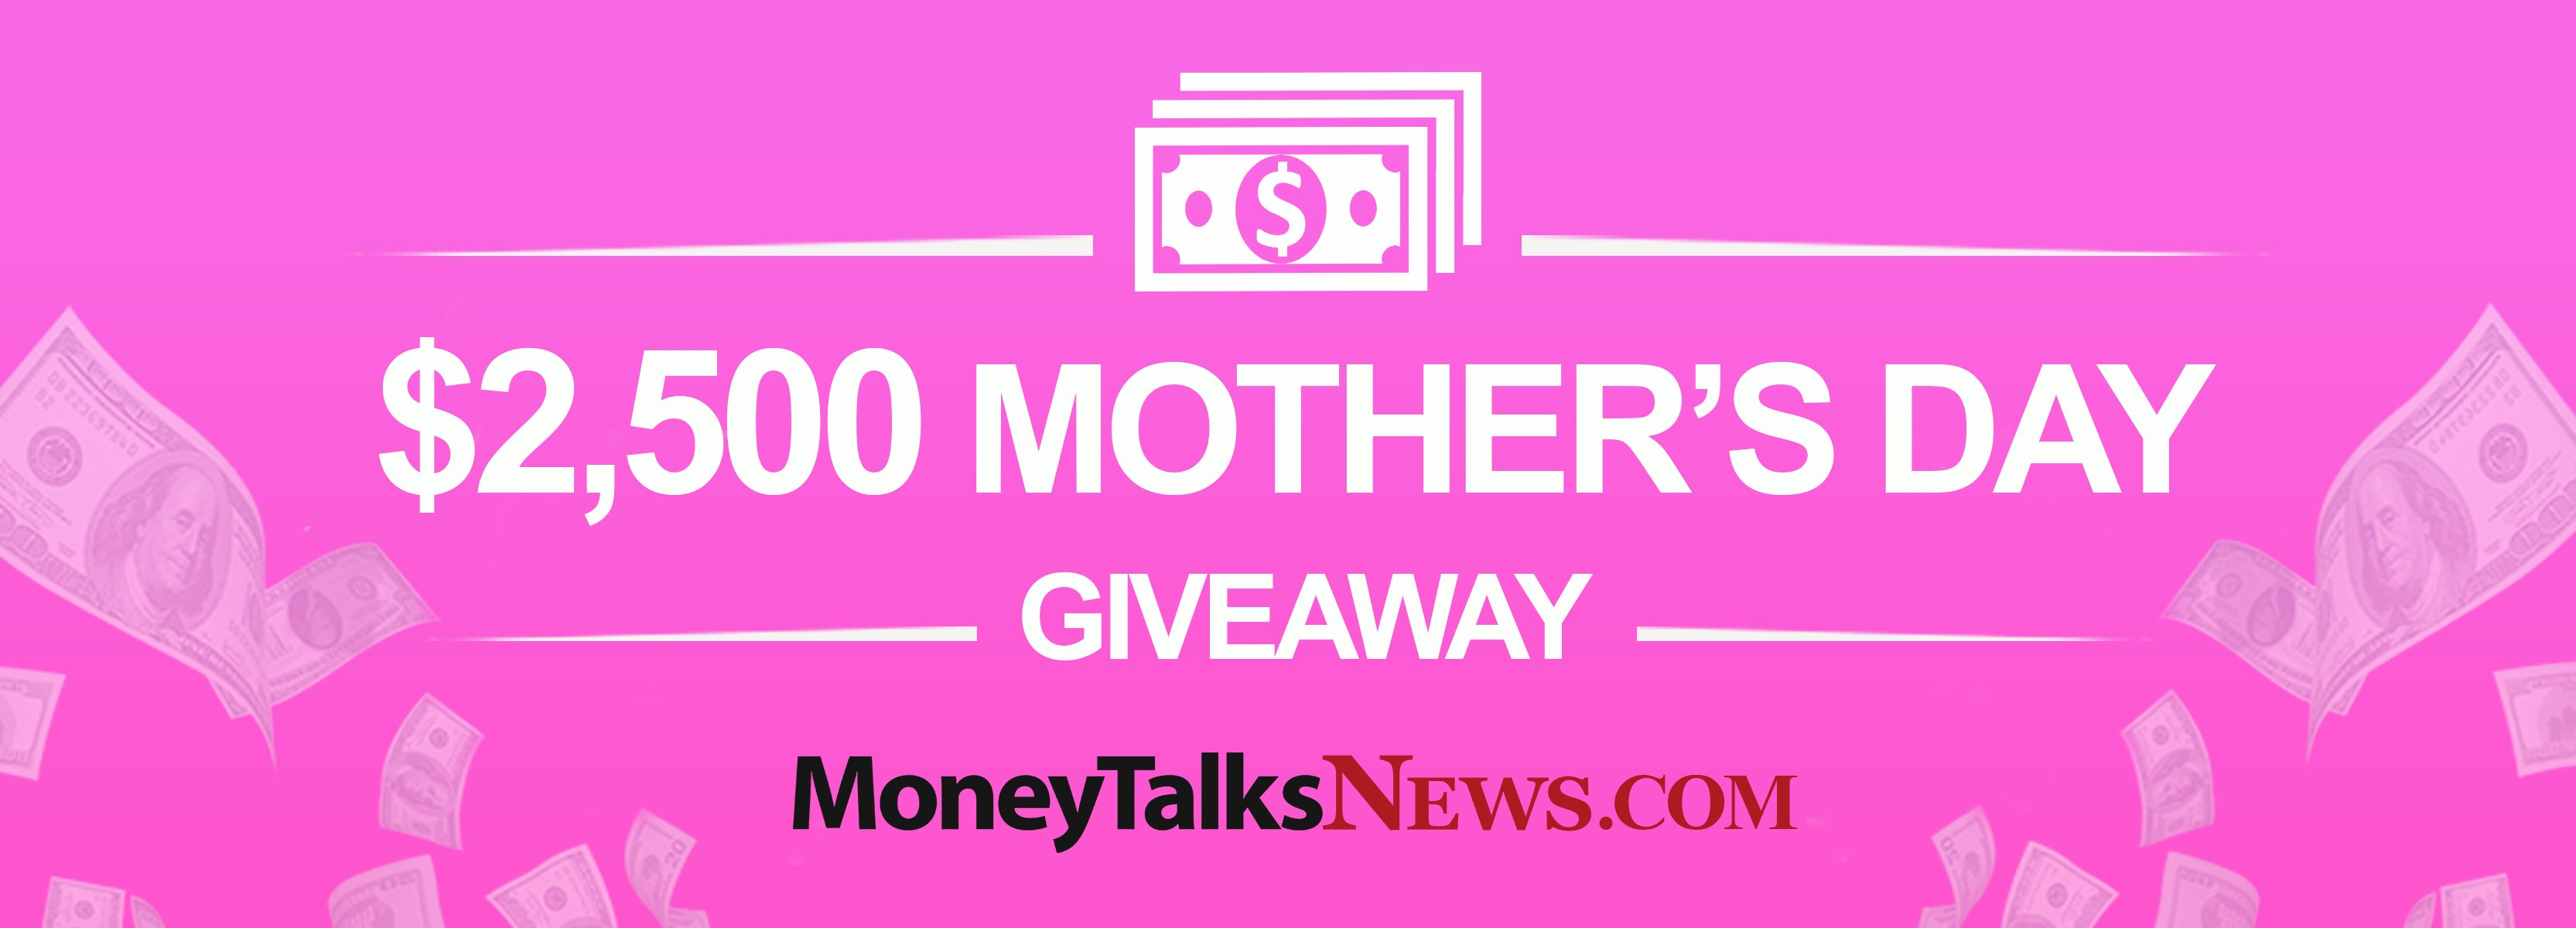 Money sweepstakes and giveaways 2018